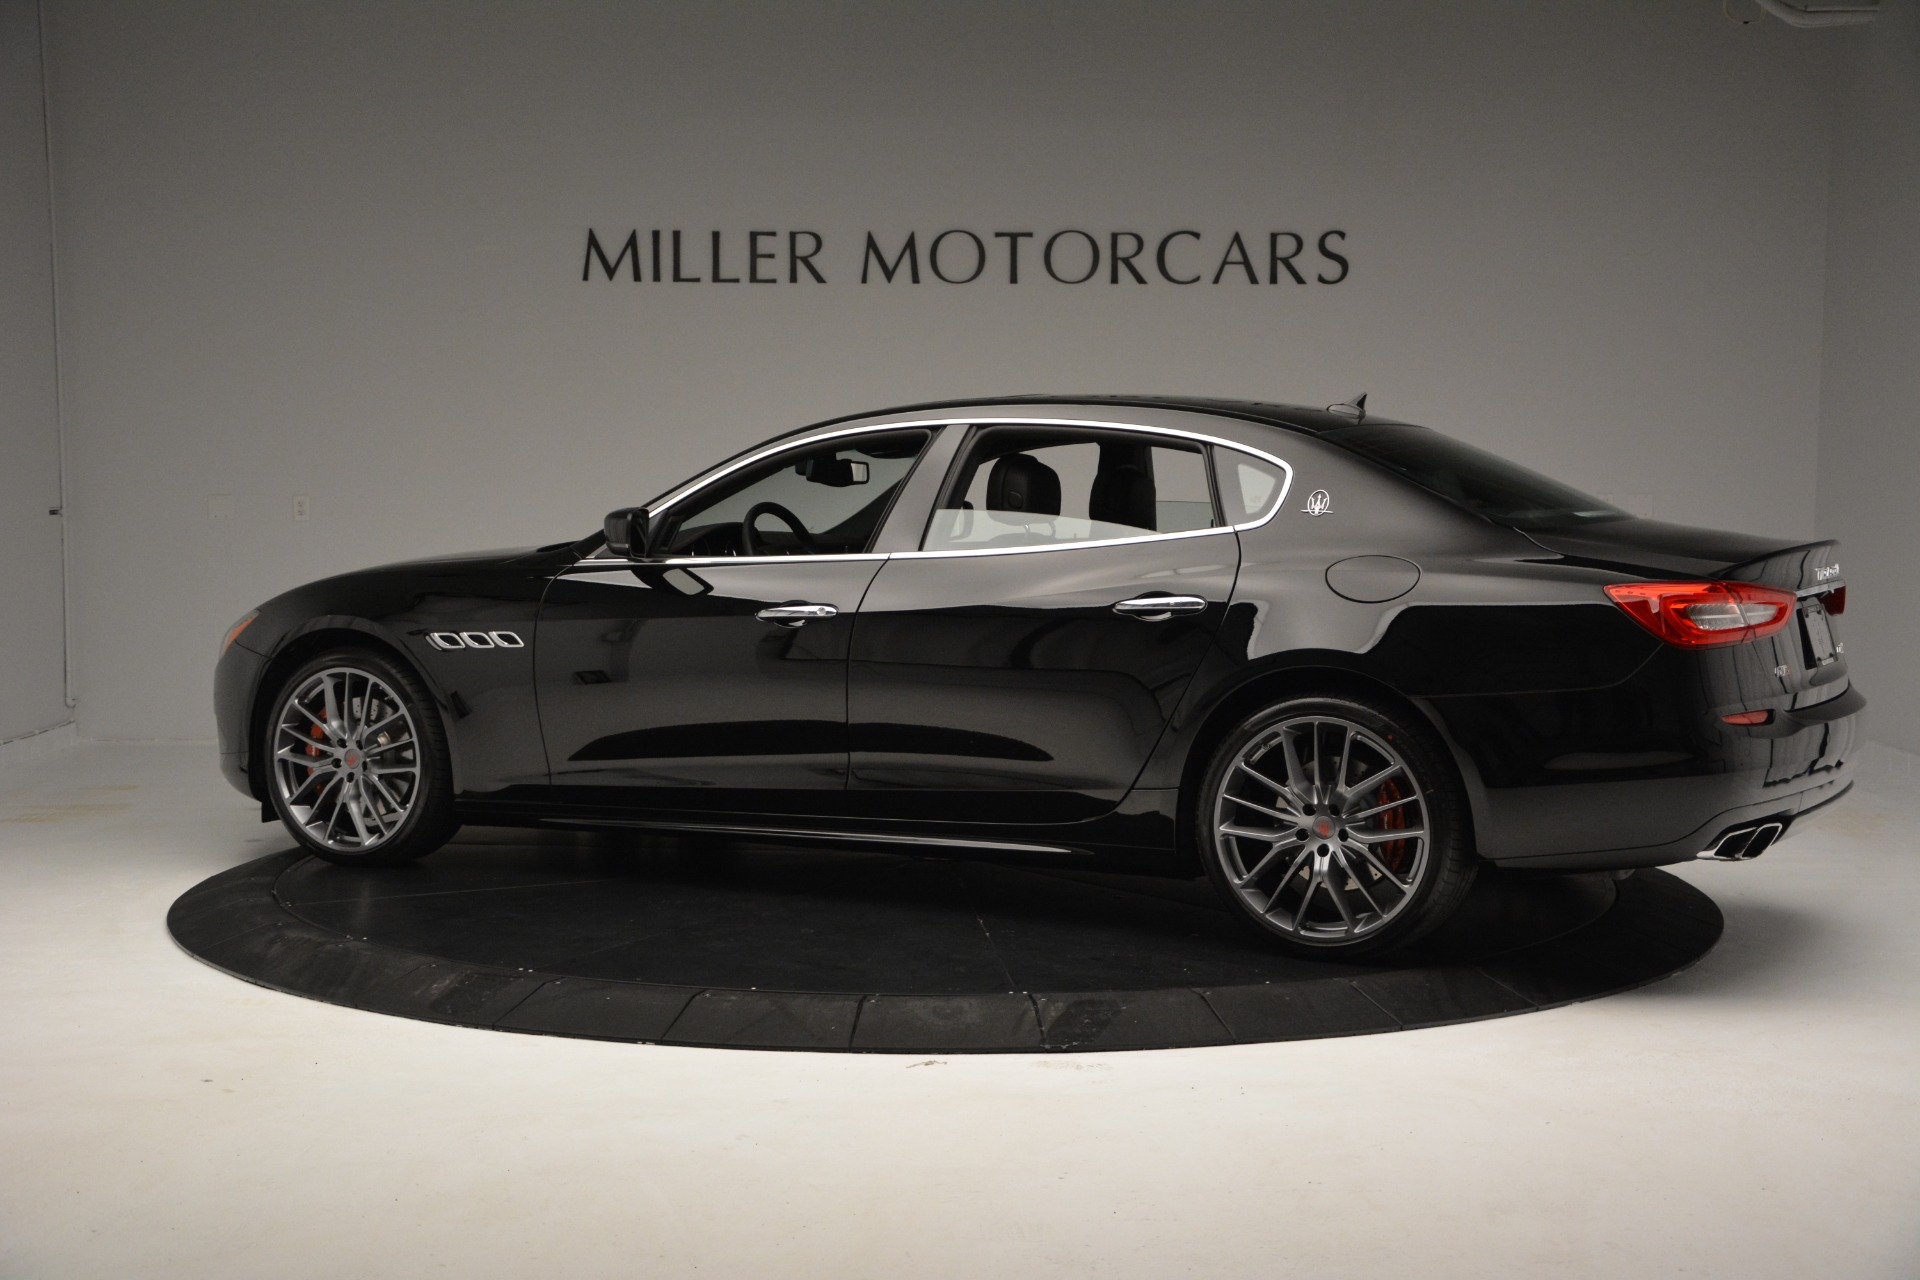 Used 2015 Maserati Quattroporte GTS For Sale In Westport, CT 2993_p4